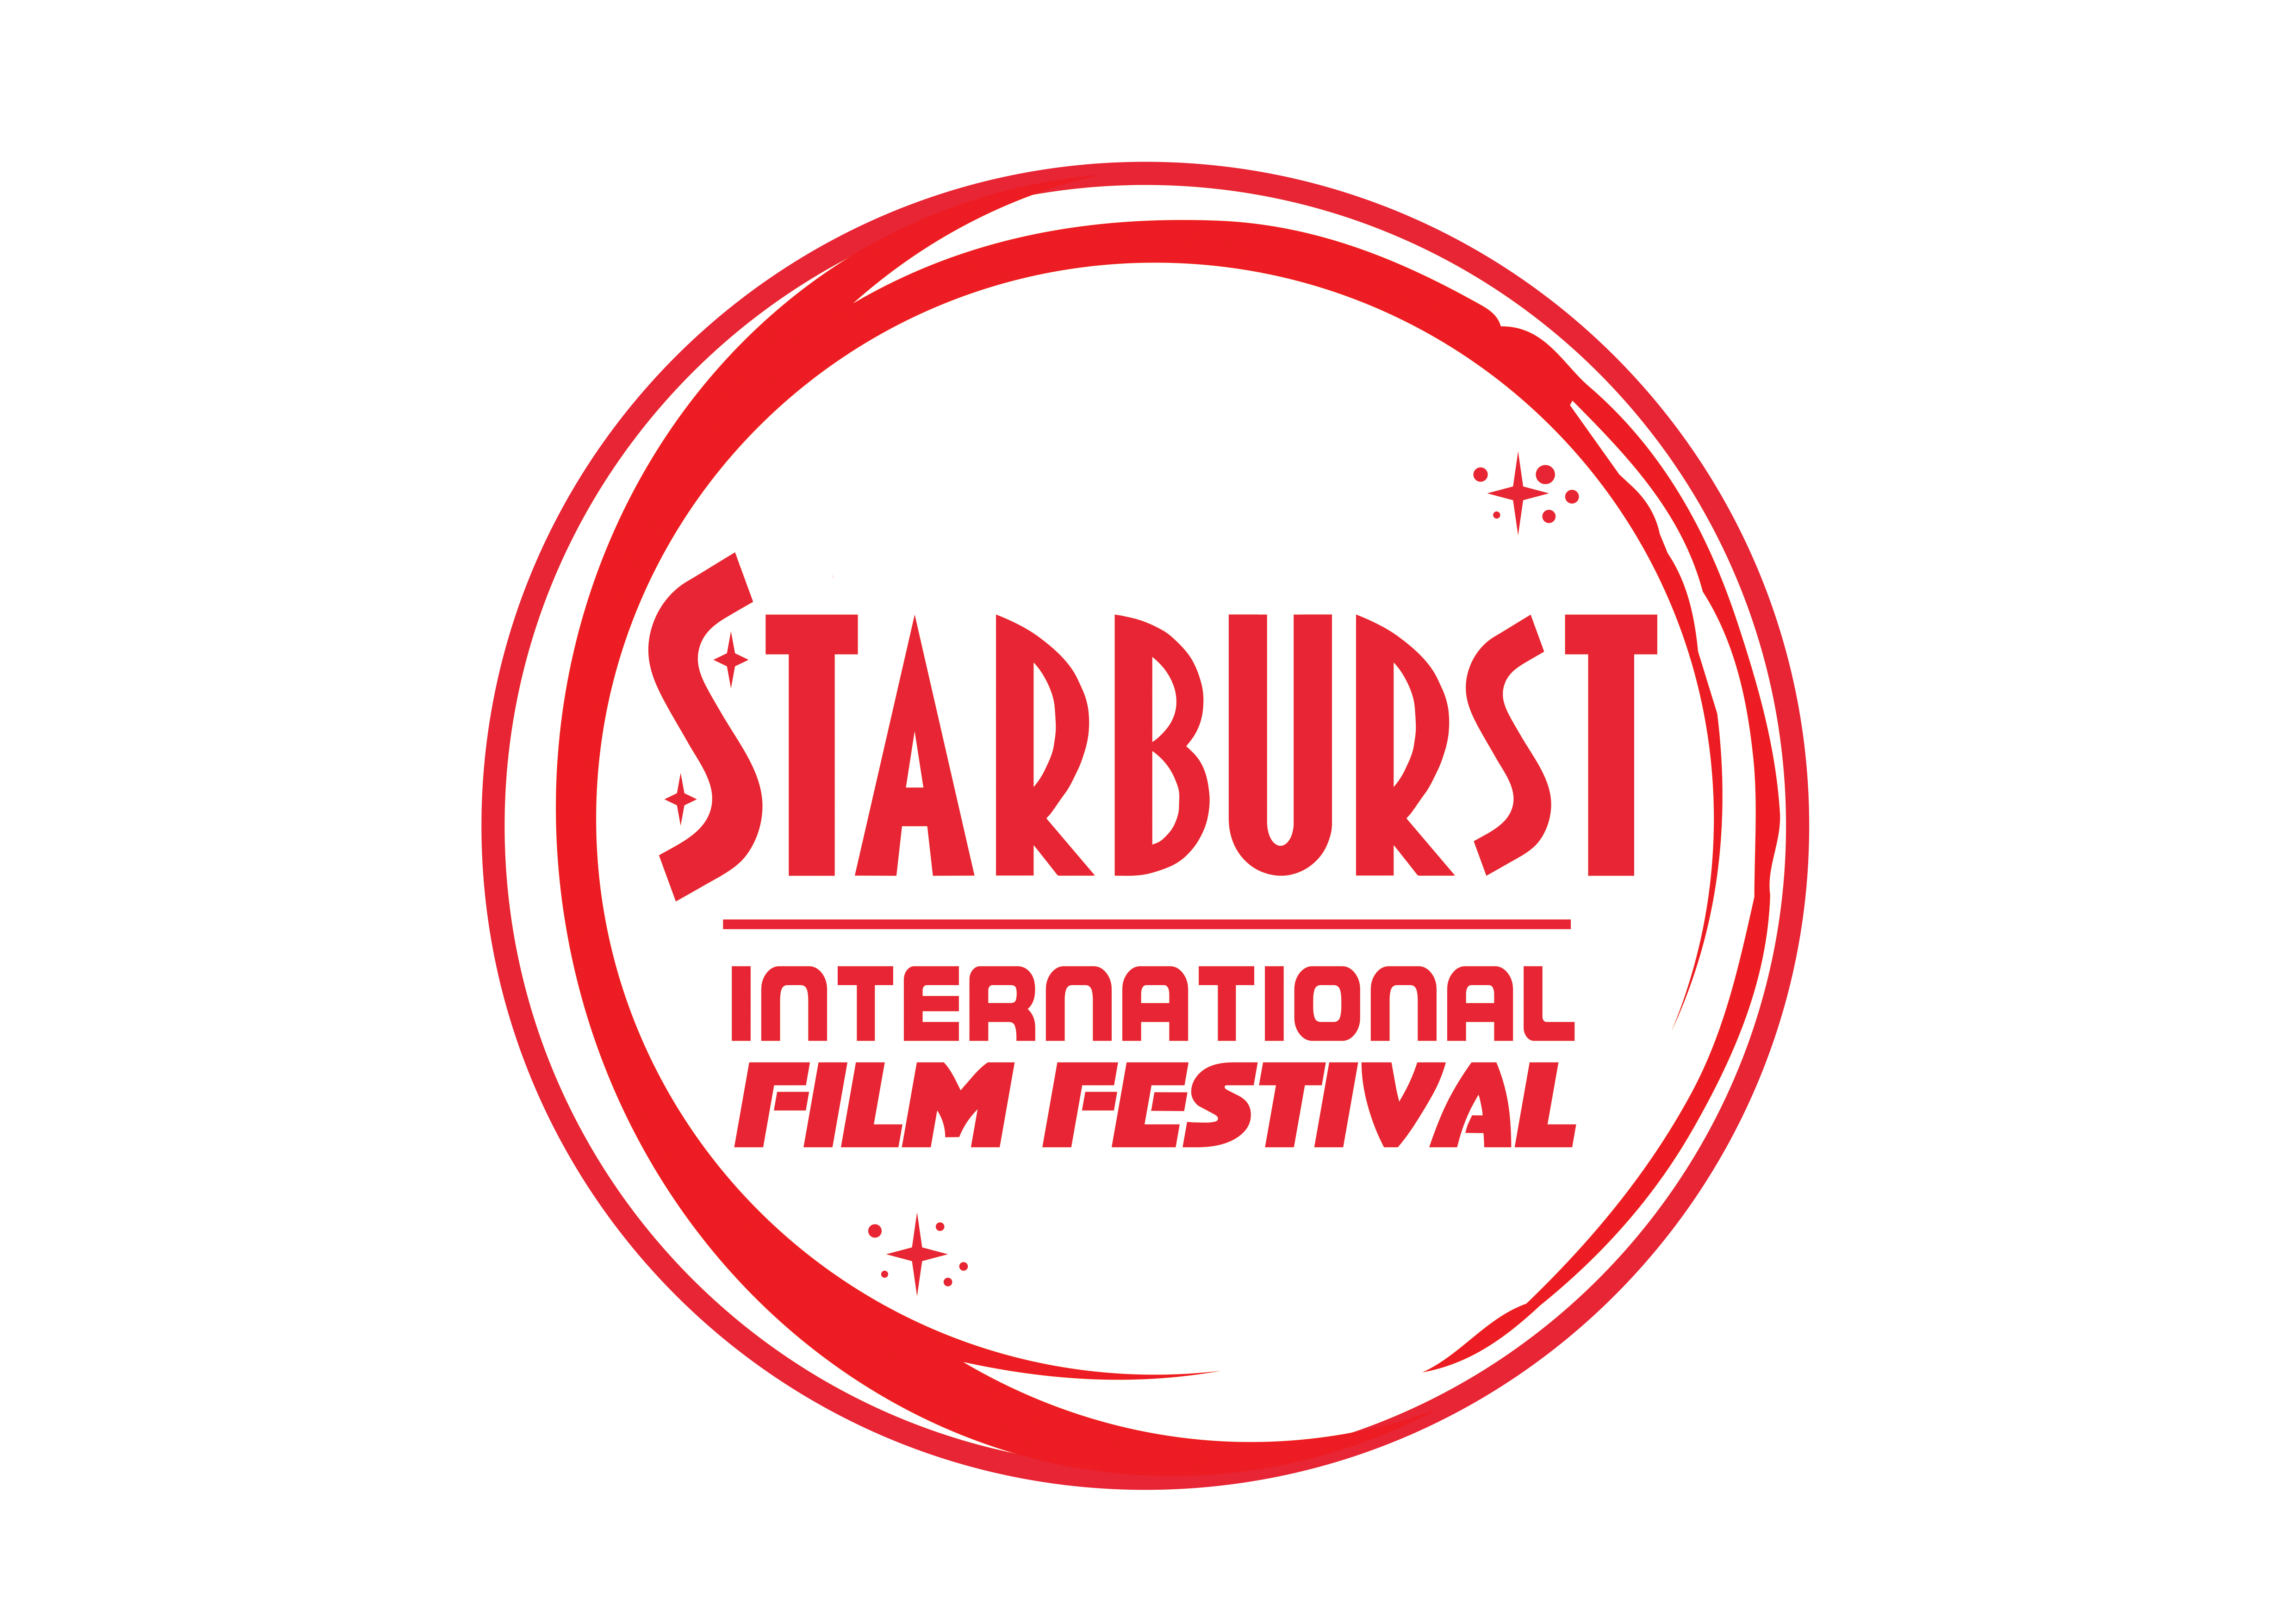 Starburst International Film Festival